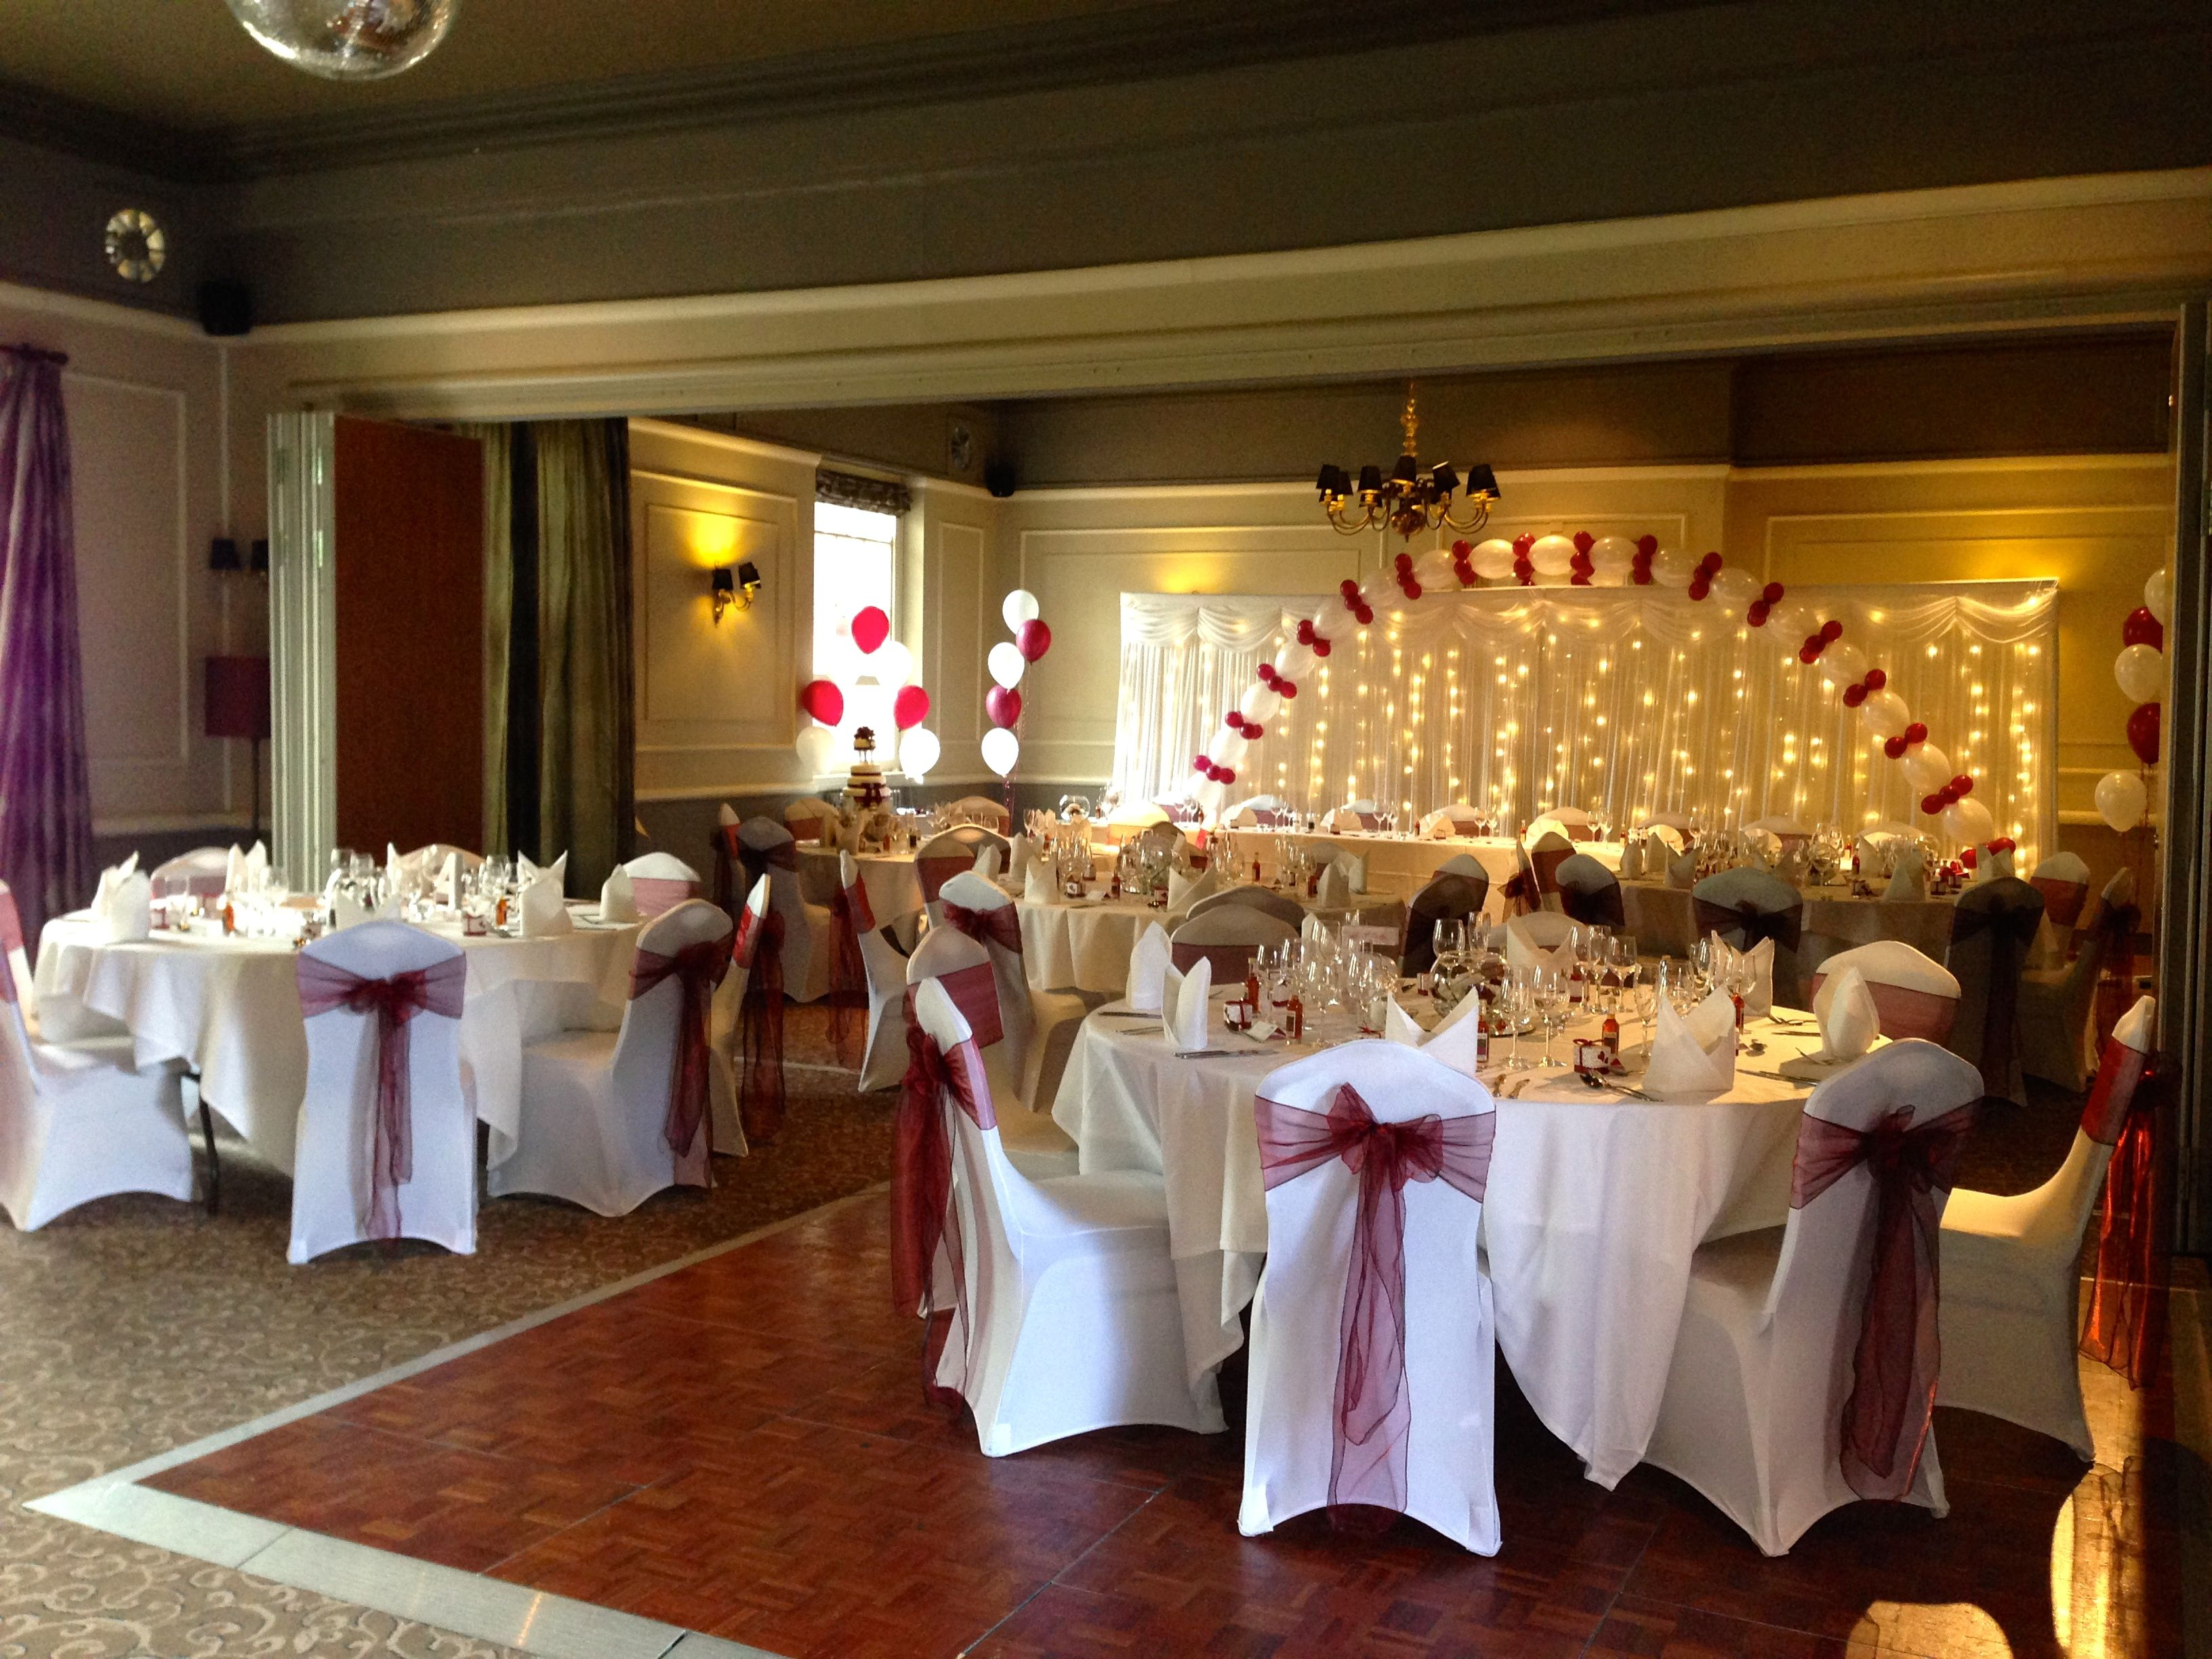 chair covers yeovil unique baby shower chairs backdrop balloon arch and centrepieces at the manor hotel